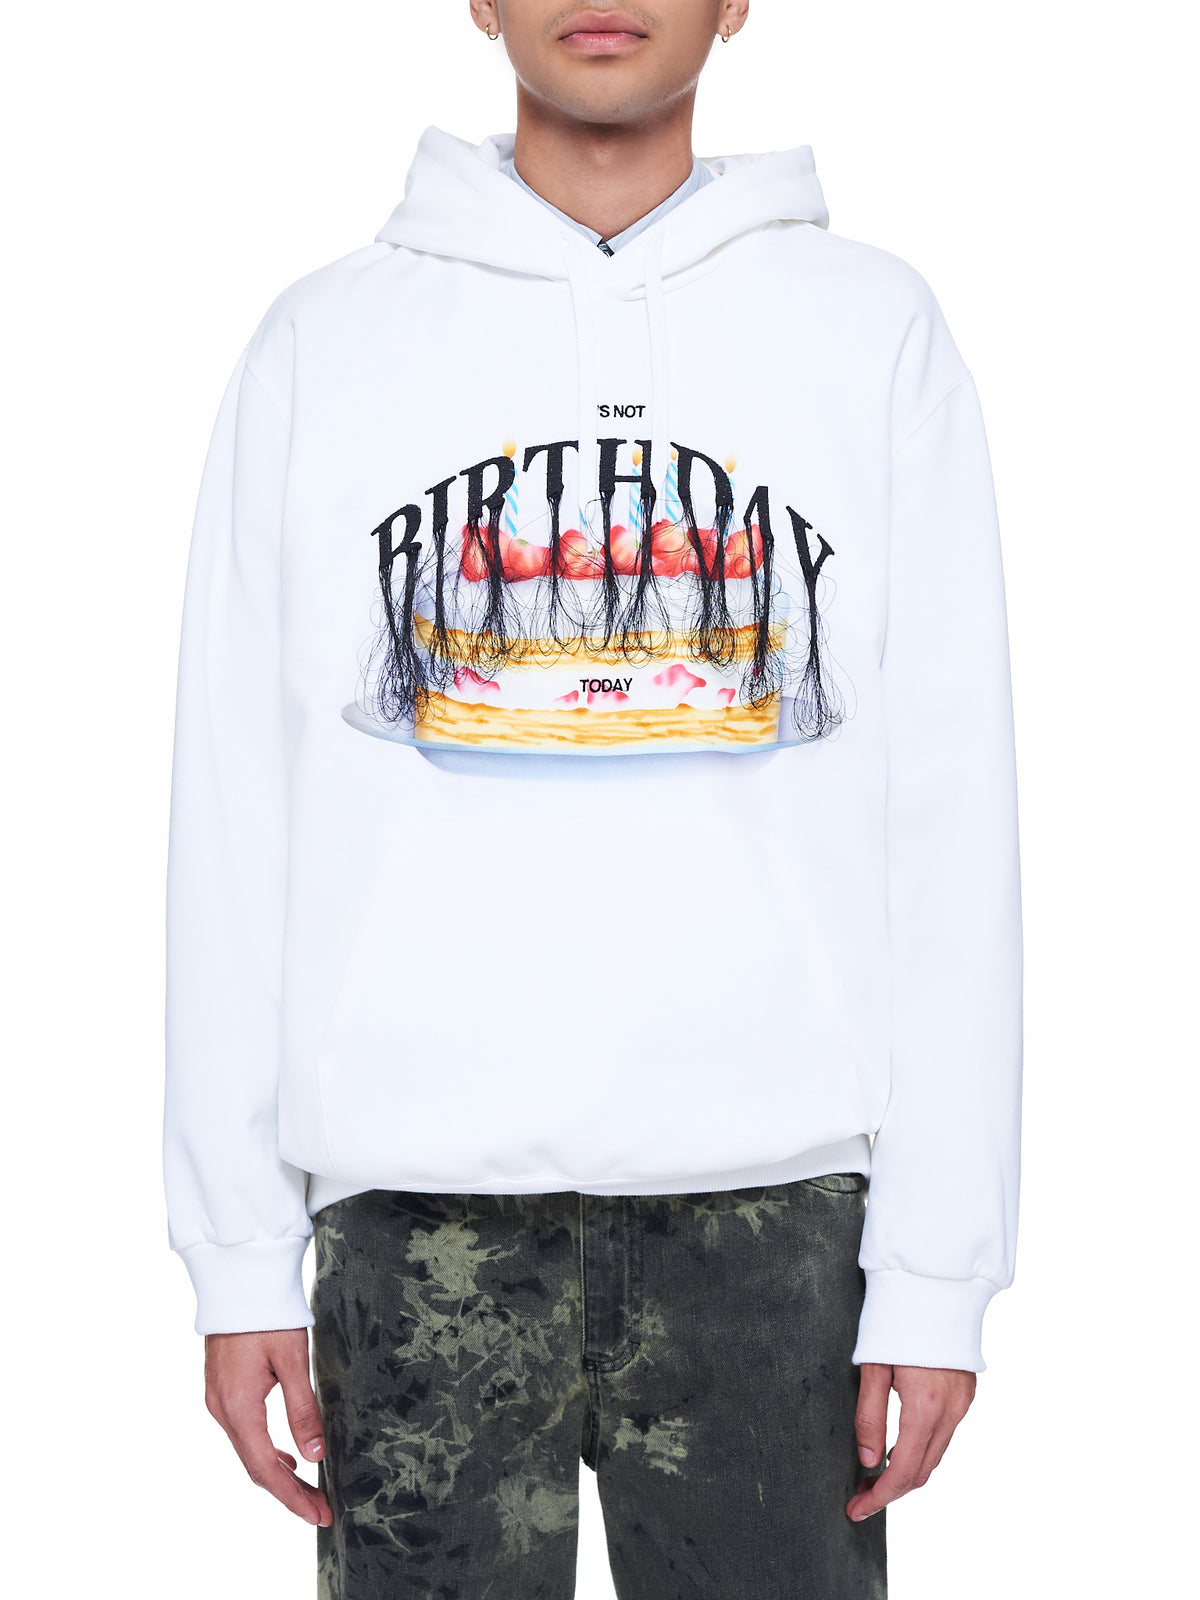 Not Anniversary Embroidery Hoodie (31CS176-WHITE)